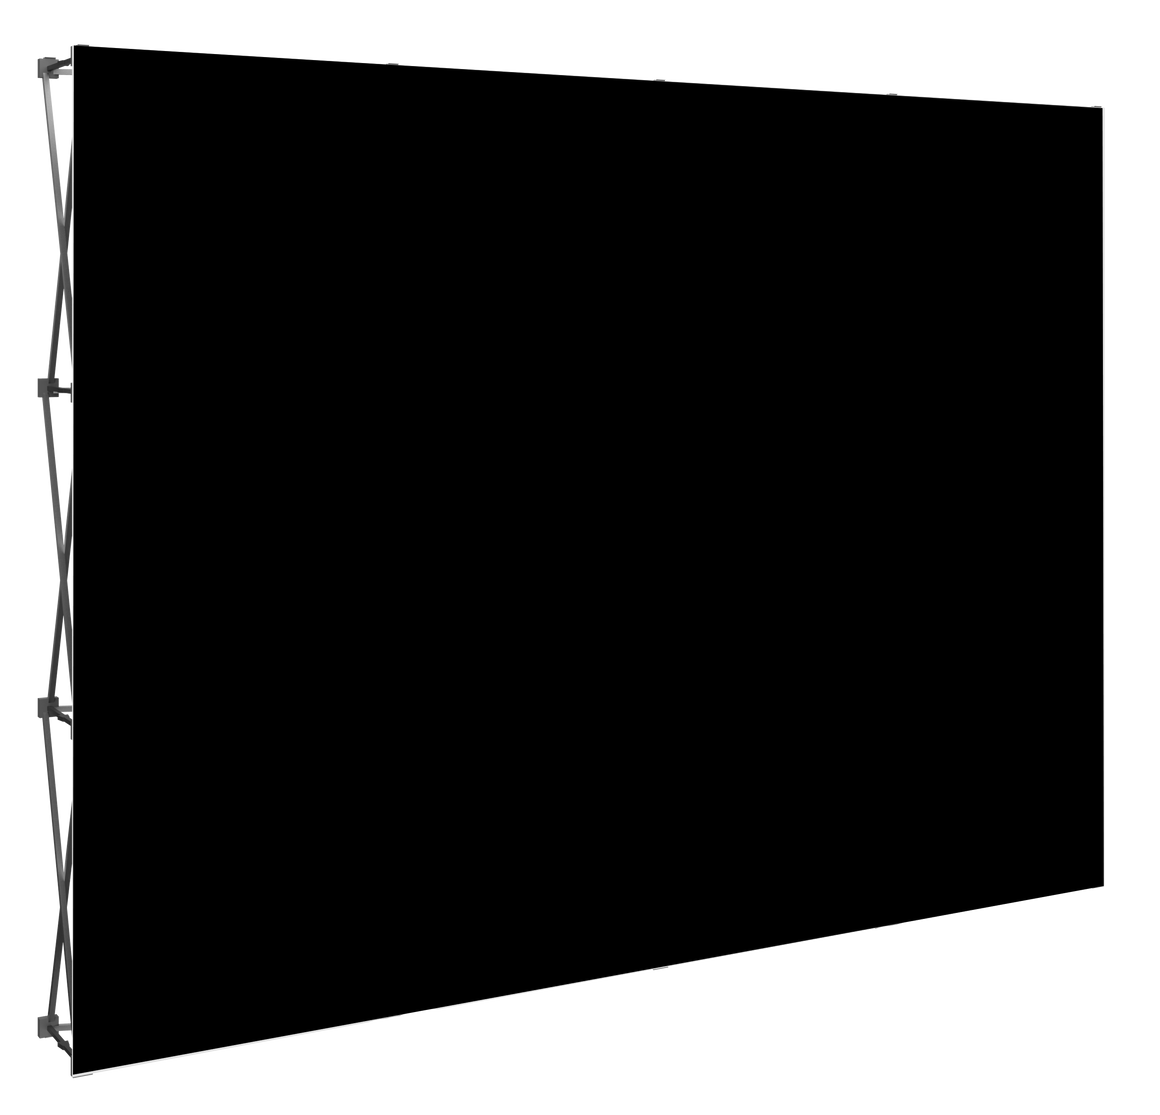 Premium Fabric Backdrop Kit - 5'x10'